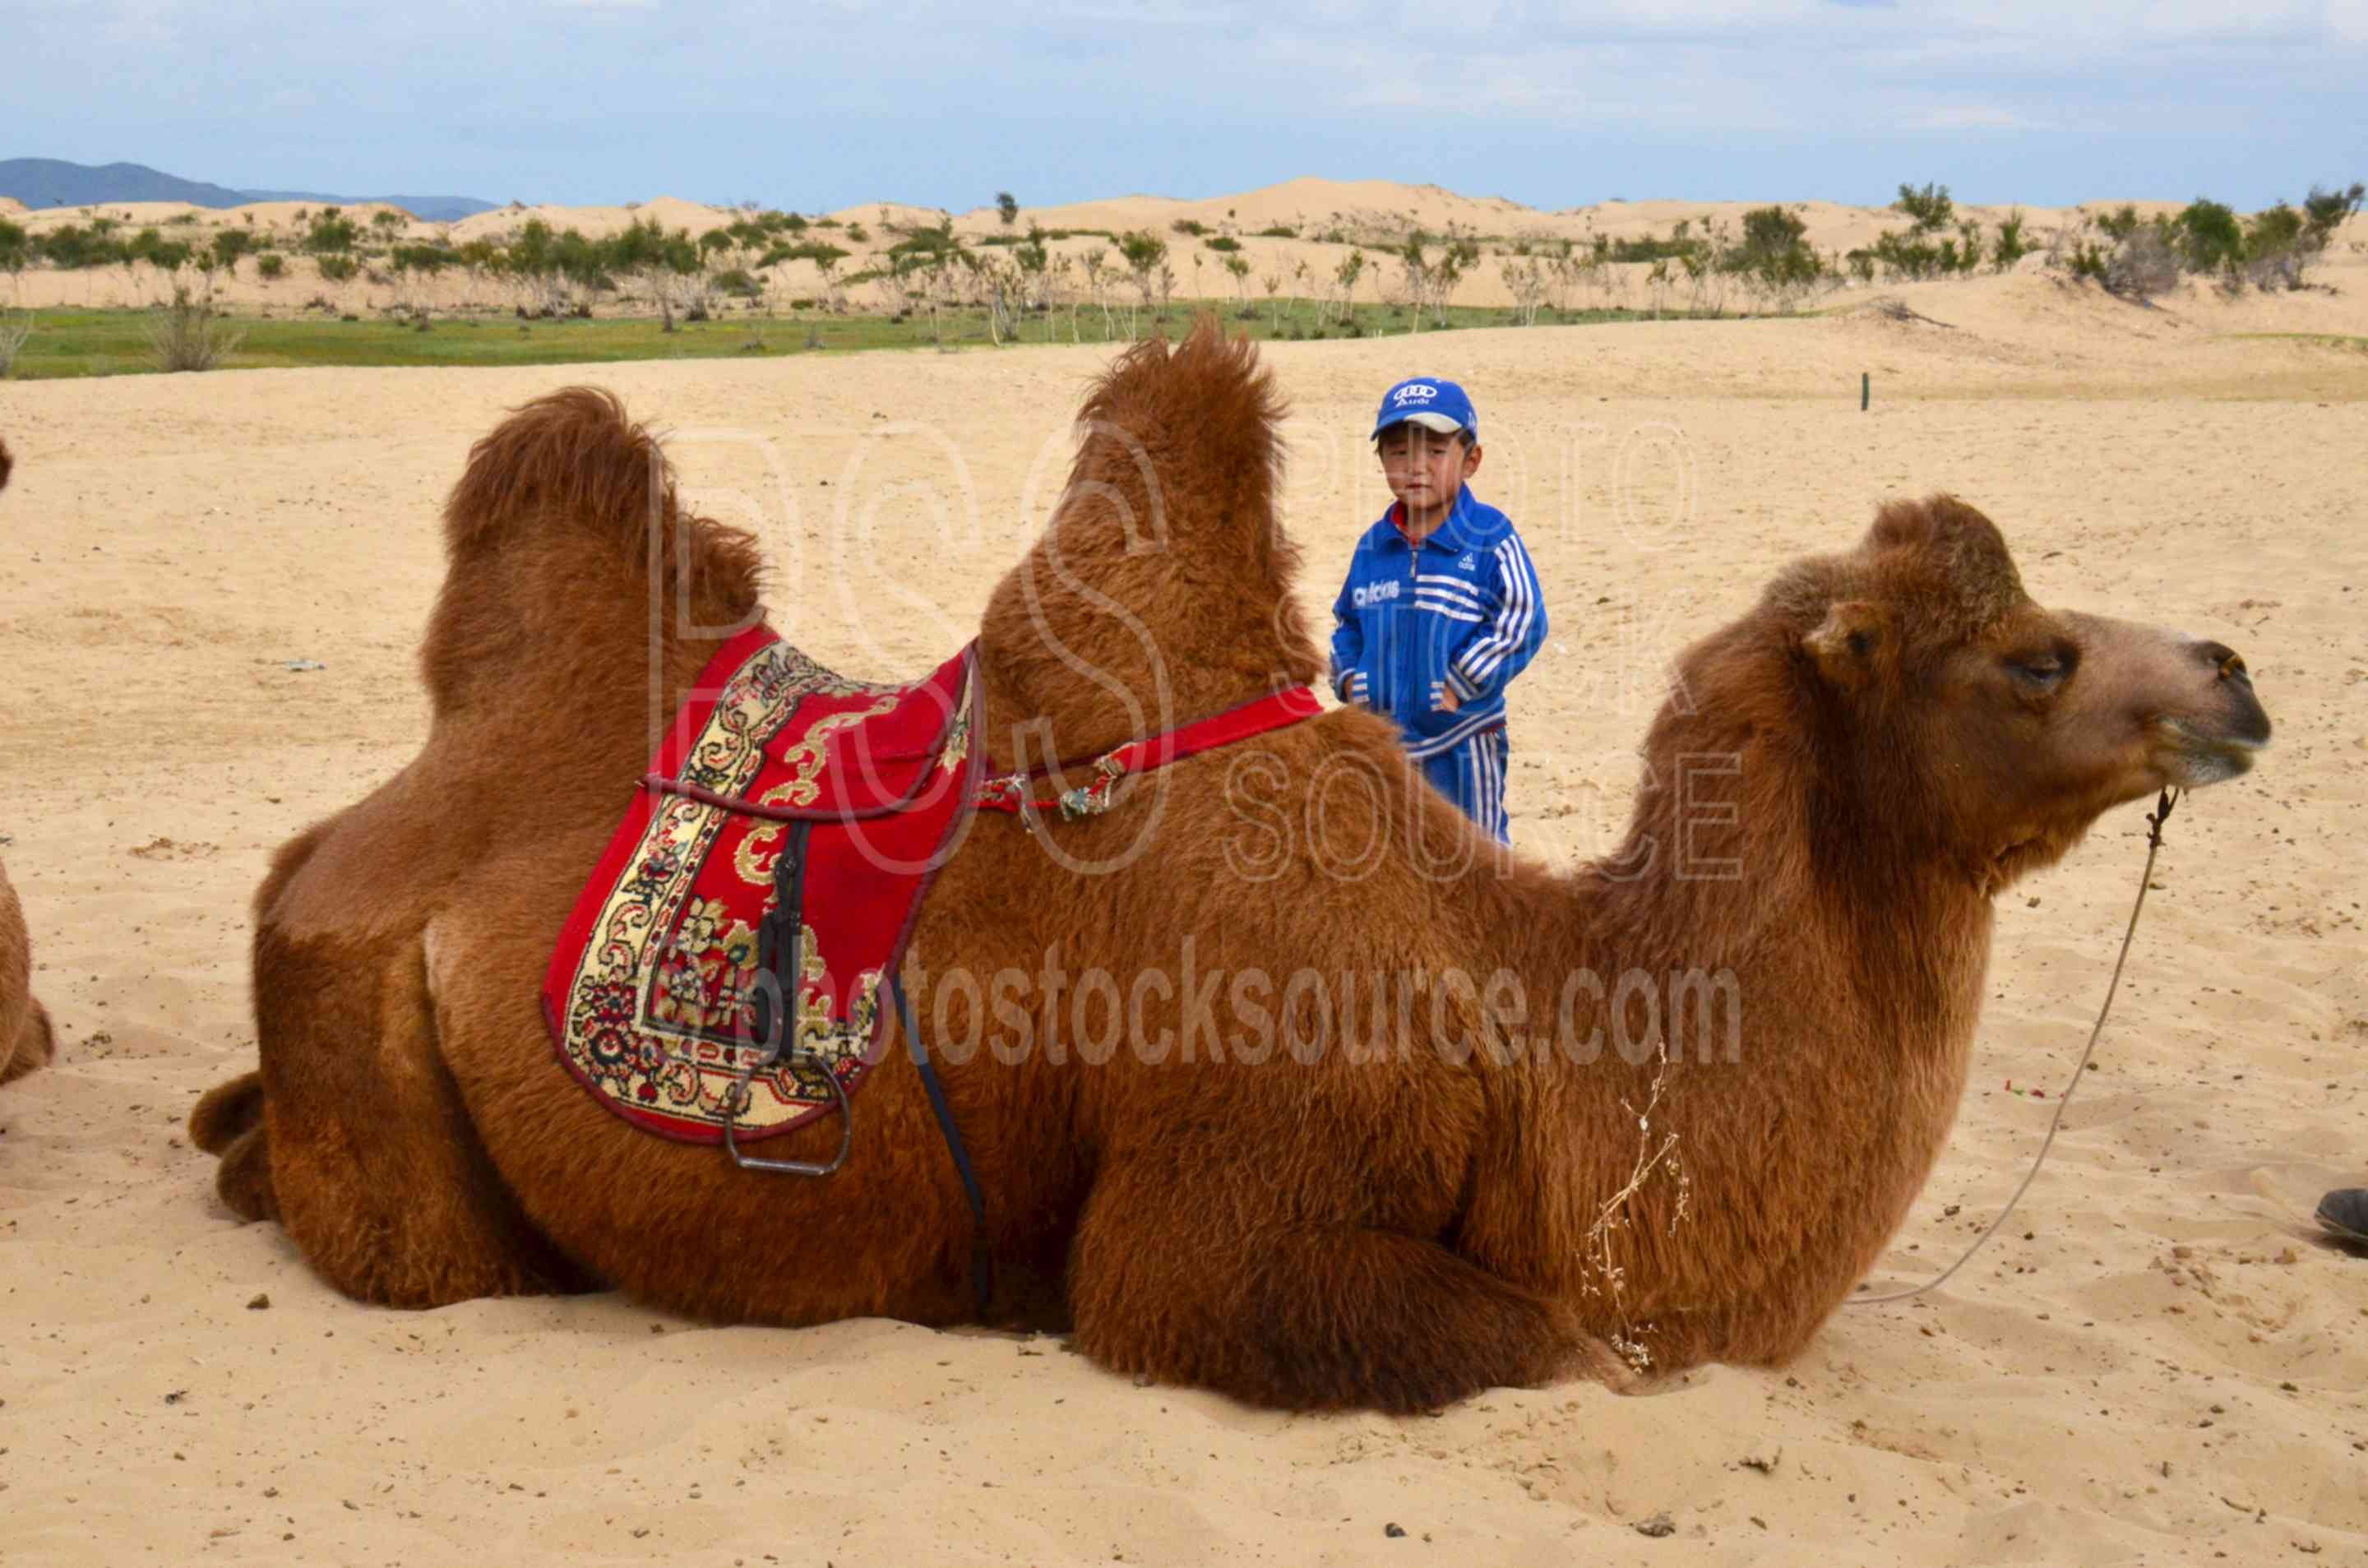 Boy with Camels,boy,camel,herd,riding,horses,sand,dunes